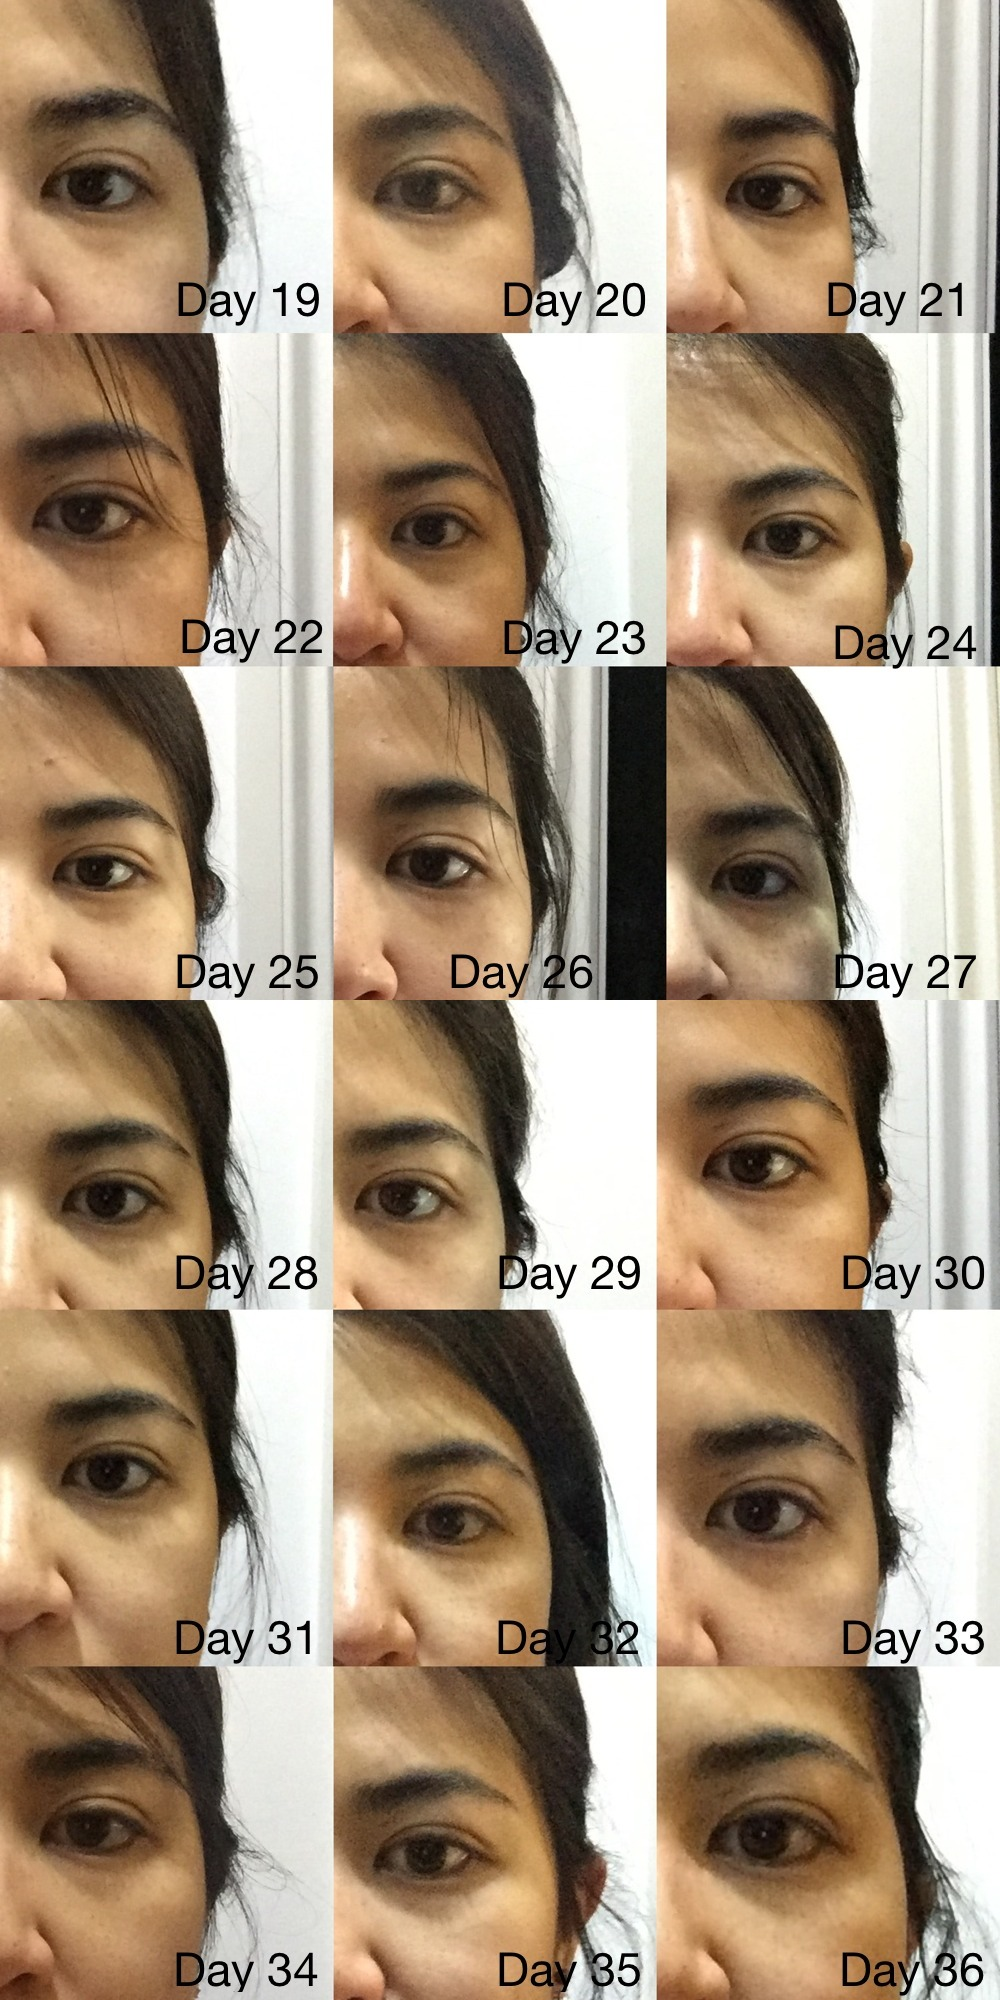 Eyecream Test 19 - 36